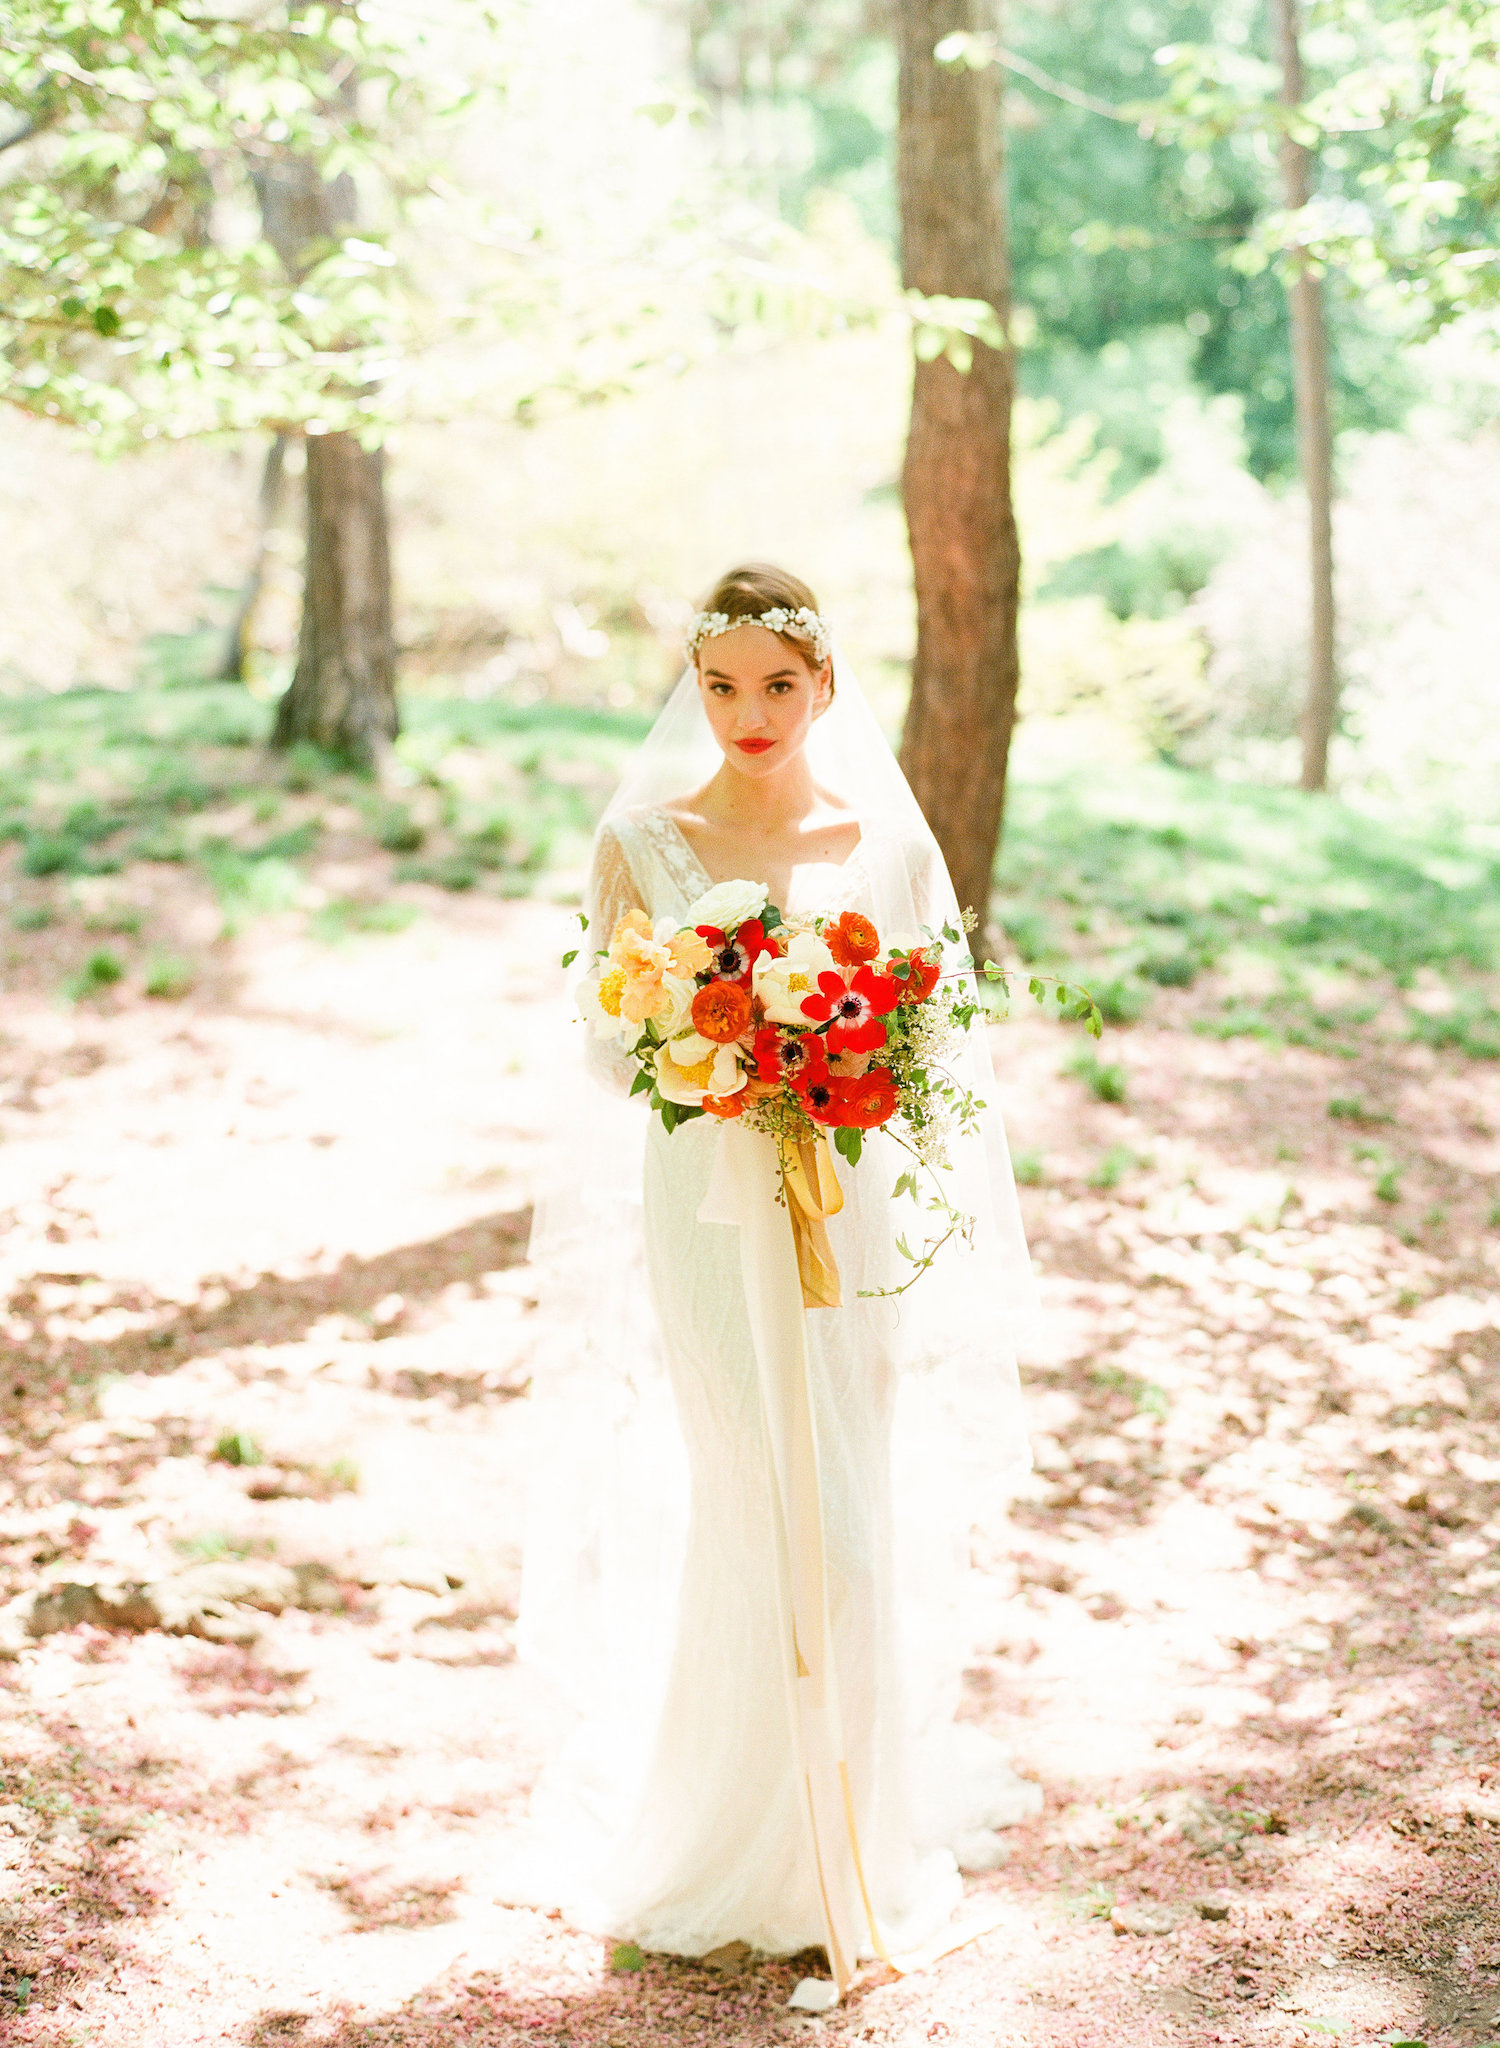 Morning Glow - Full Aperture Floral & Lindsay Madden Photography 10.jpeg